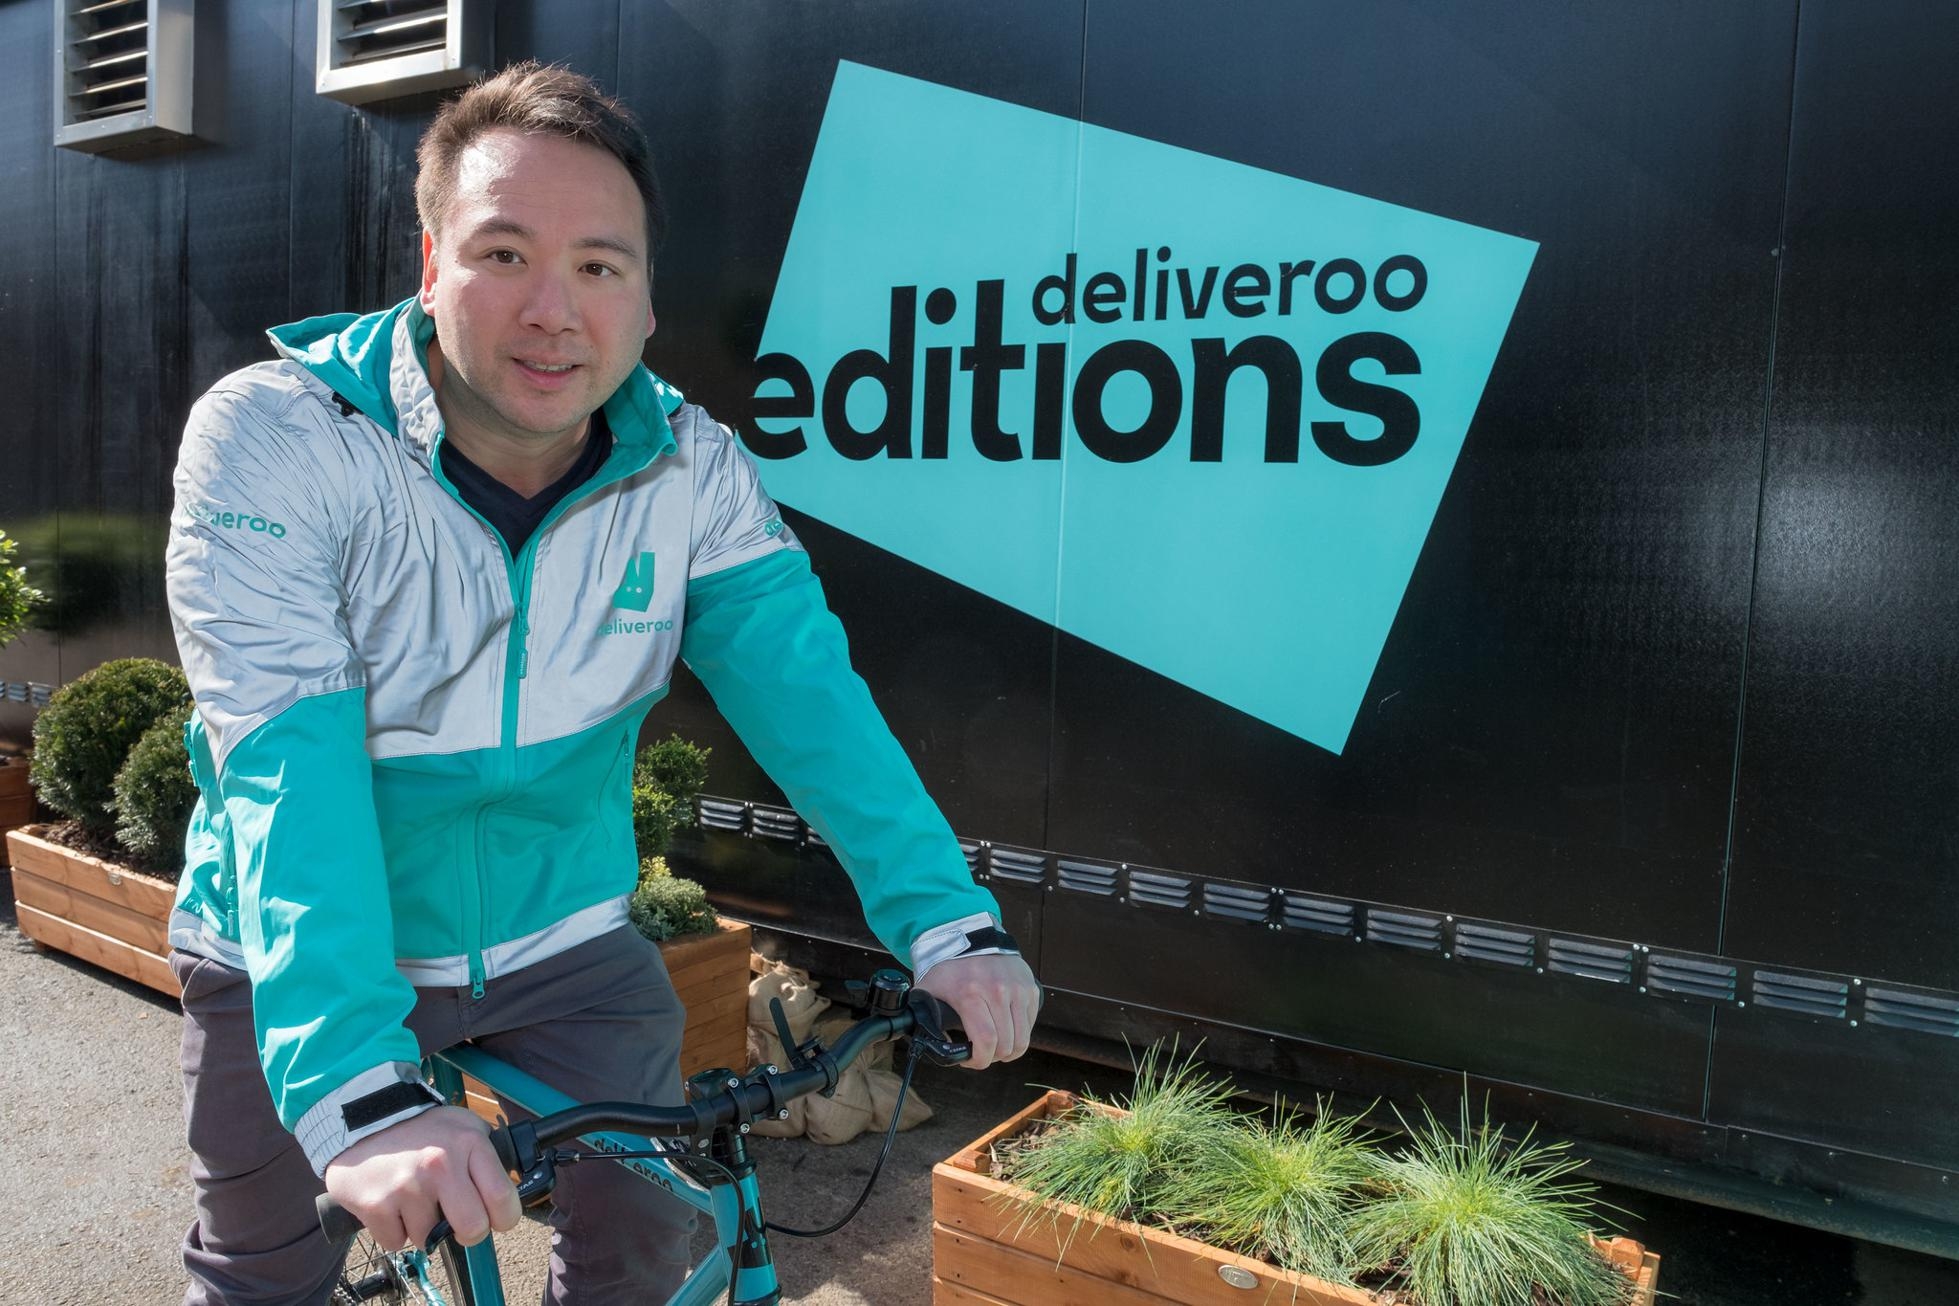 Deliveroo founder and CEO Will Shu